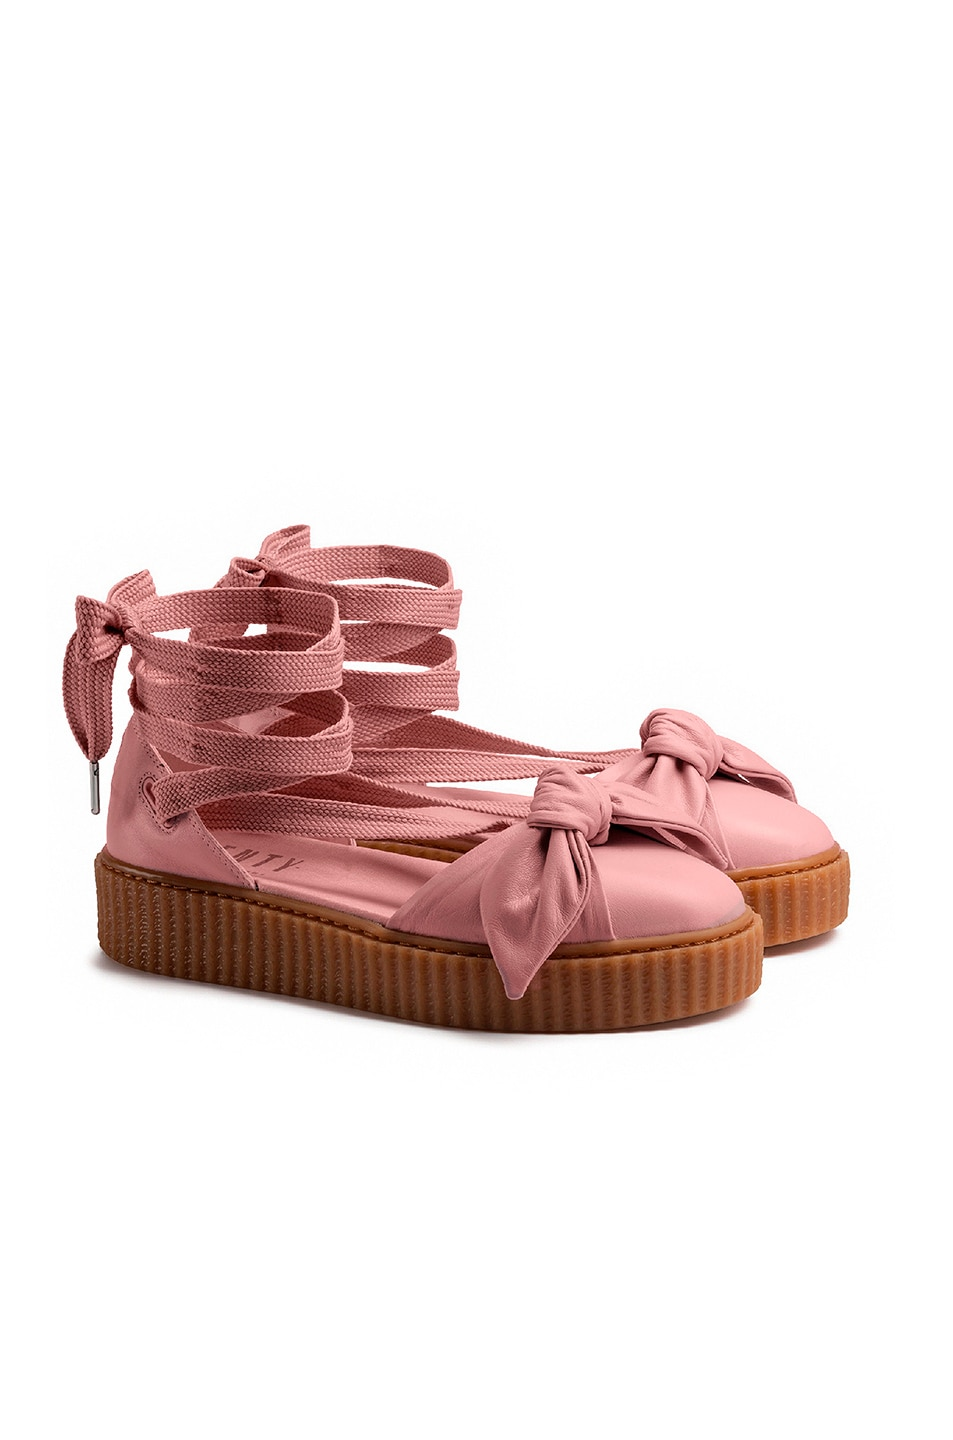 Image 2 of Fenty by Puma Bow Leather Creeper Sandals in Silver Pink & Oatmeal